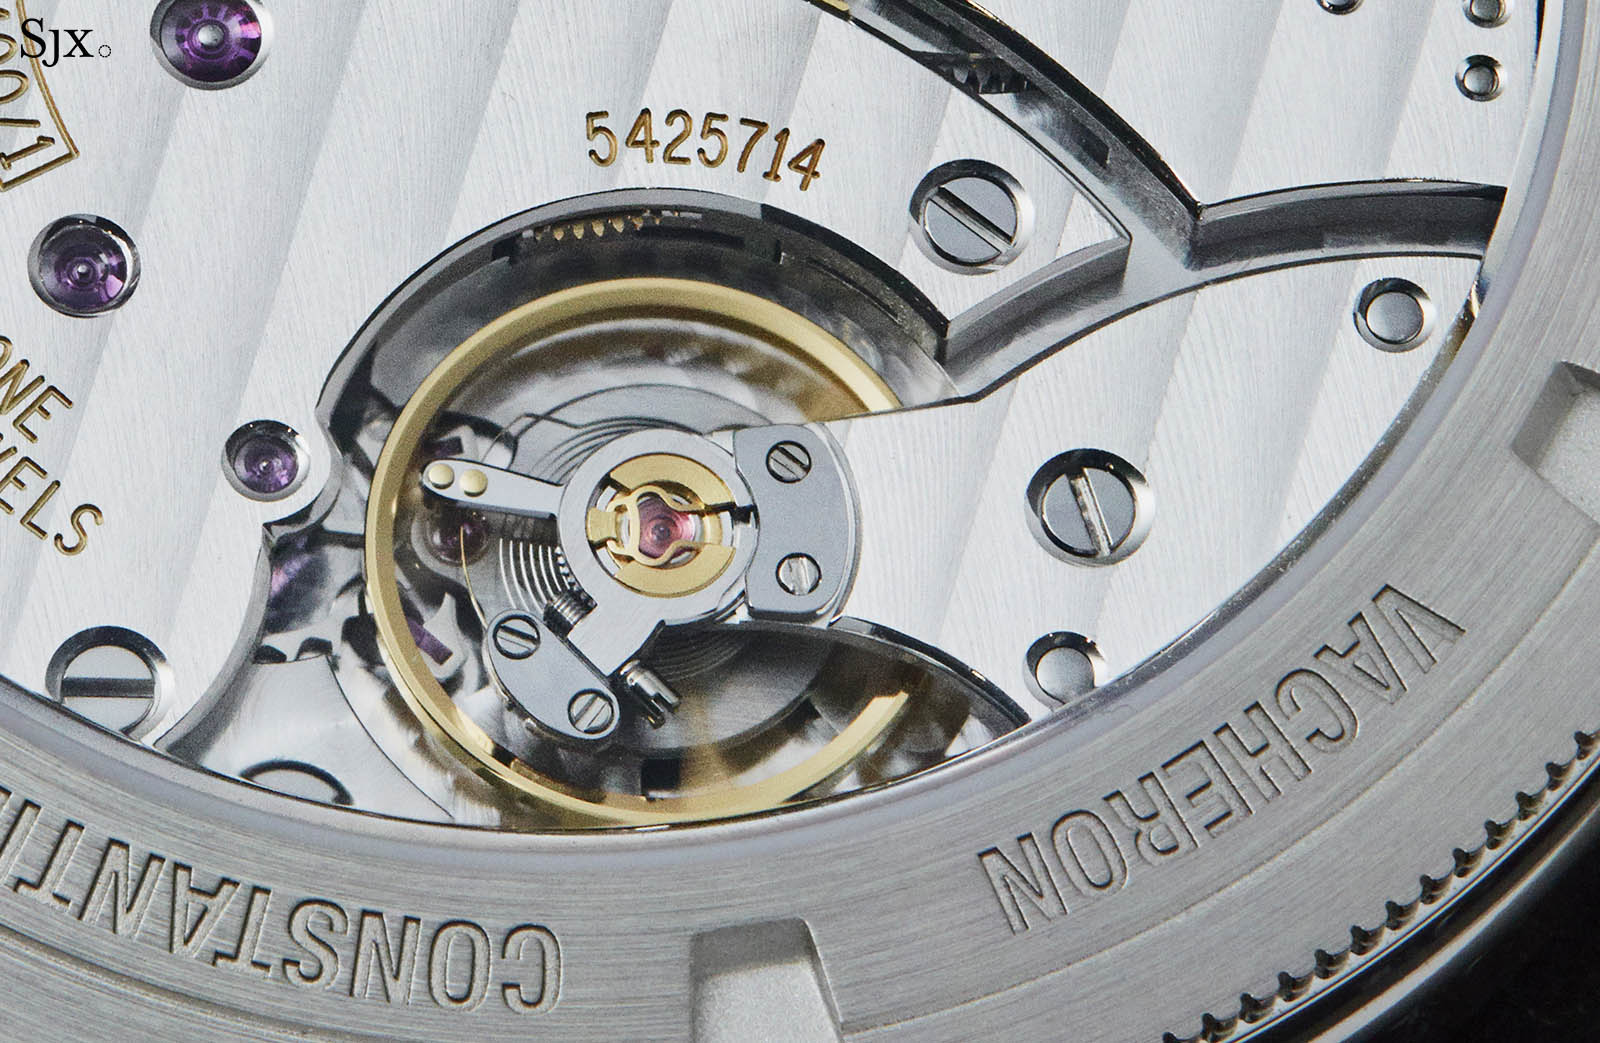 Vacheron Constantin Traditionnelle Manual-winding 'Collection Excellence Platine' 1